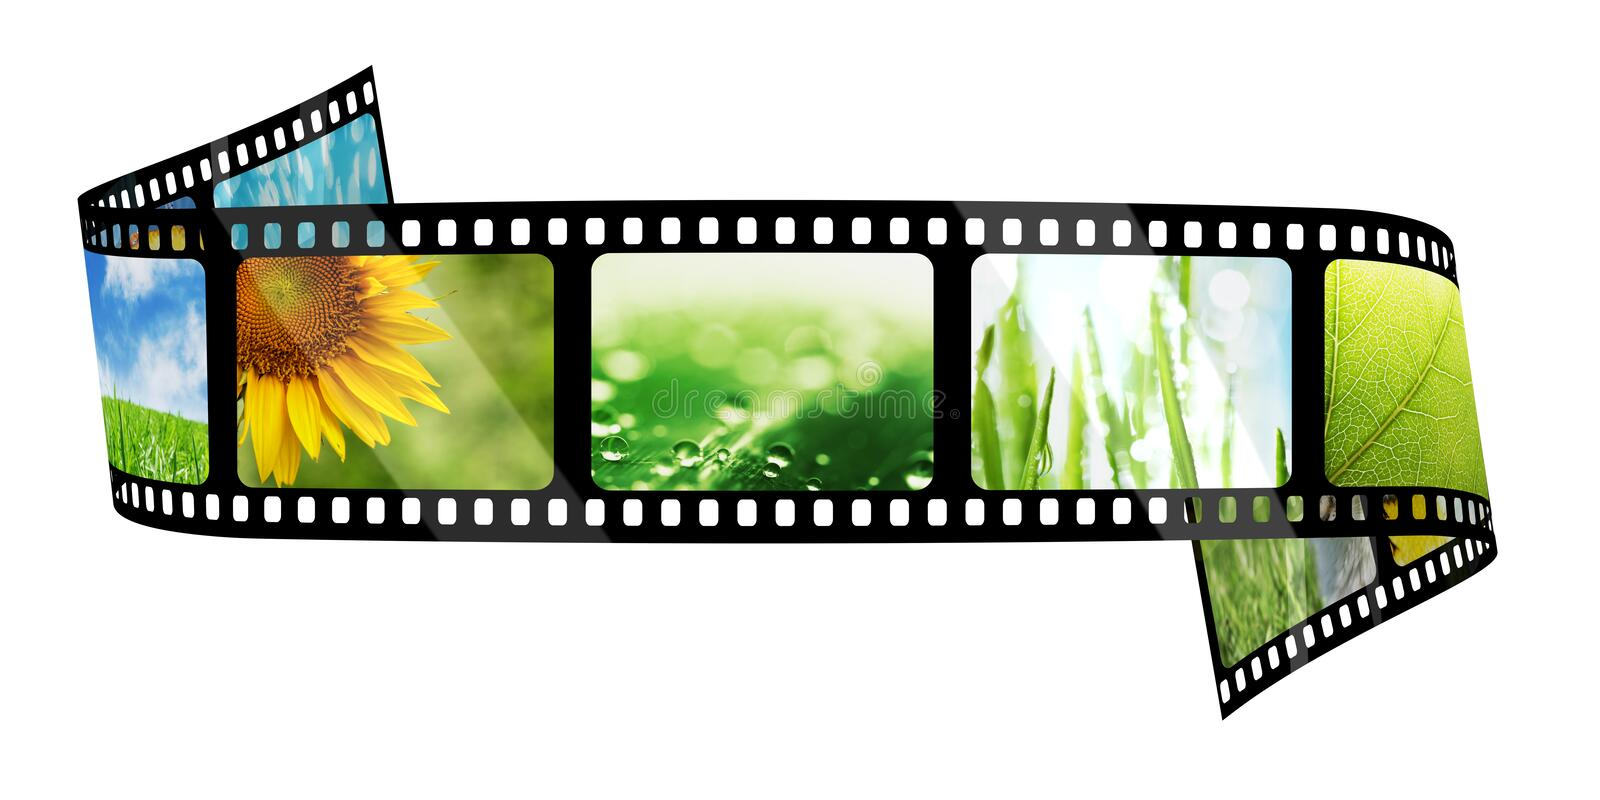 Film strip with images vector illustration